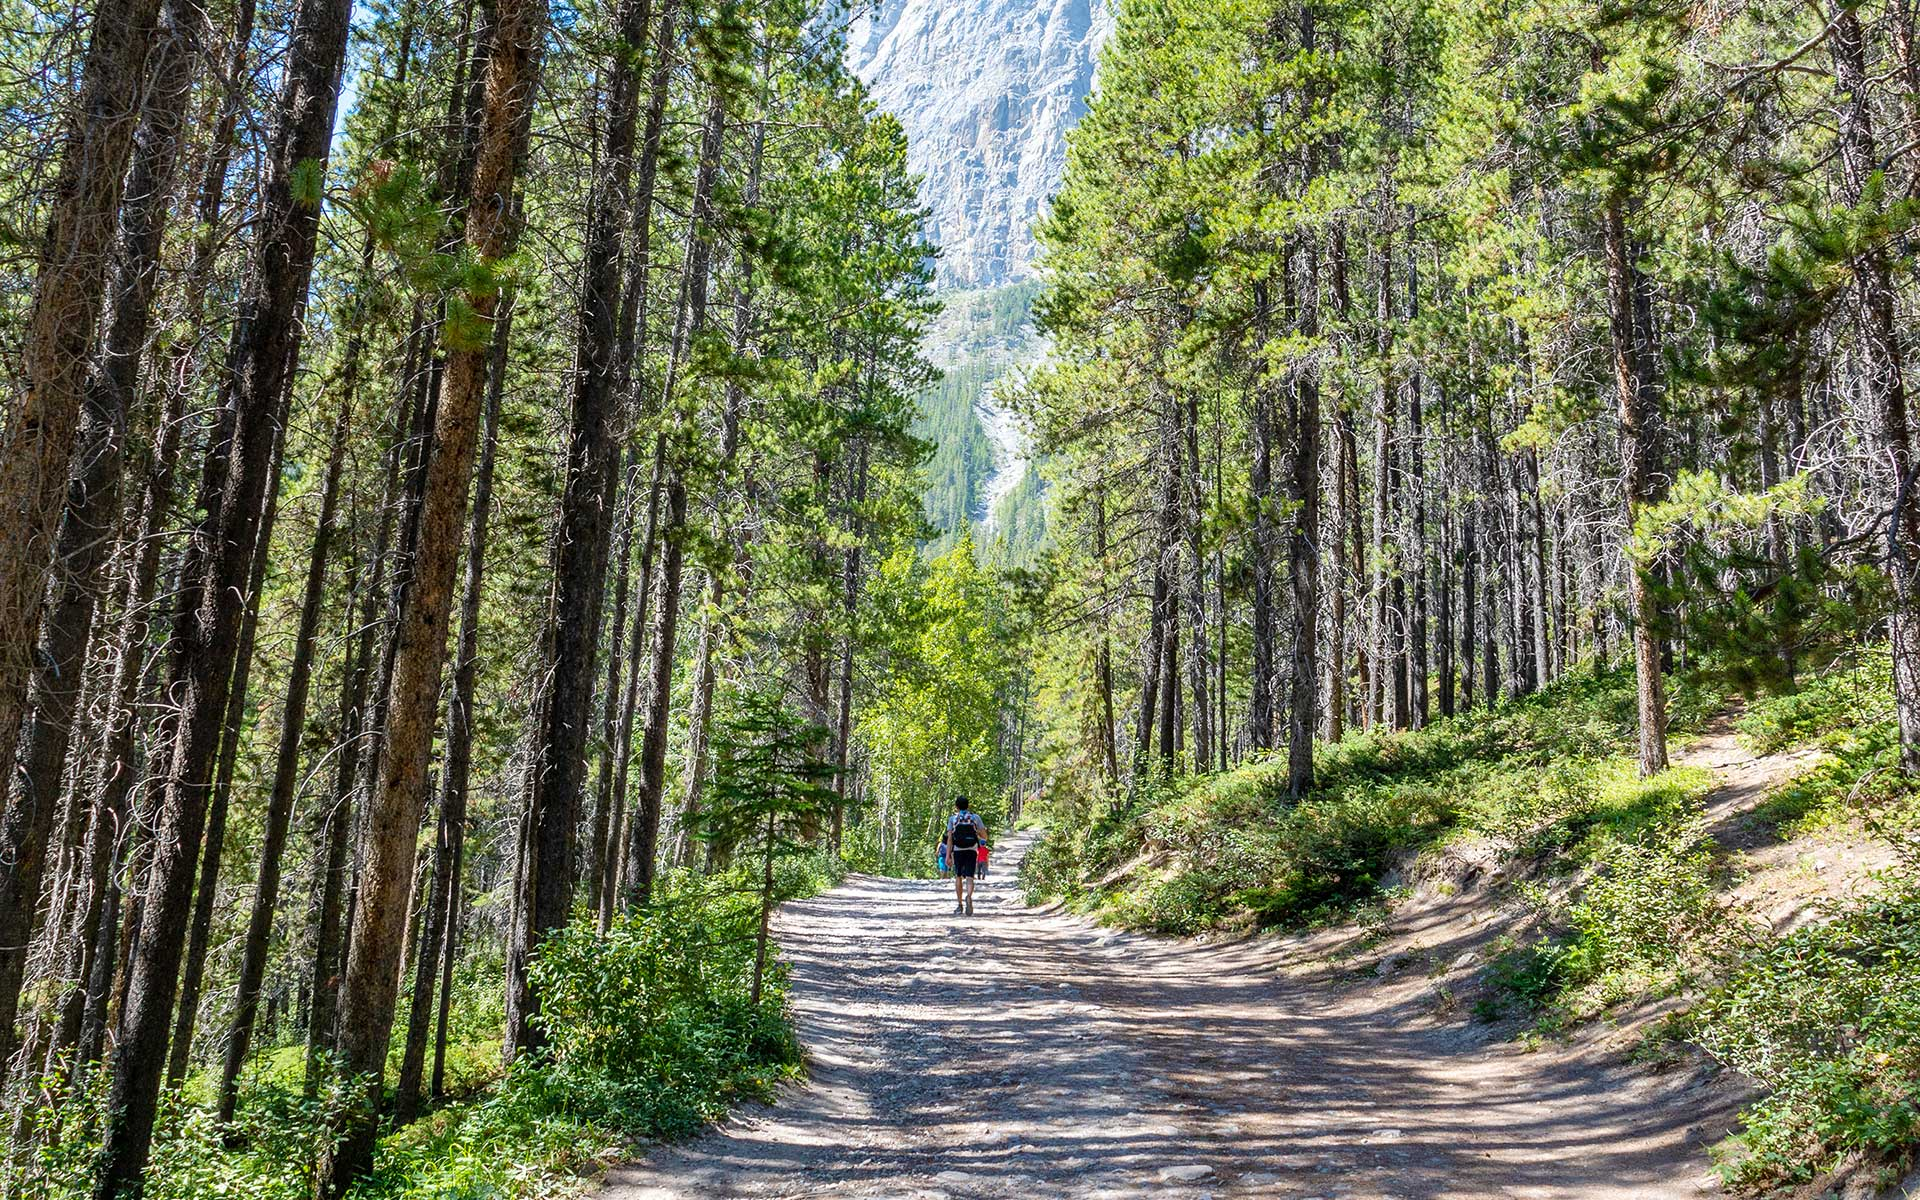 A person is walking up the gravel trail through pine trees on the Grassi Lakes hike.